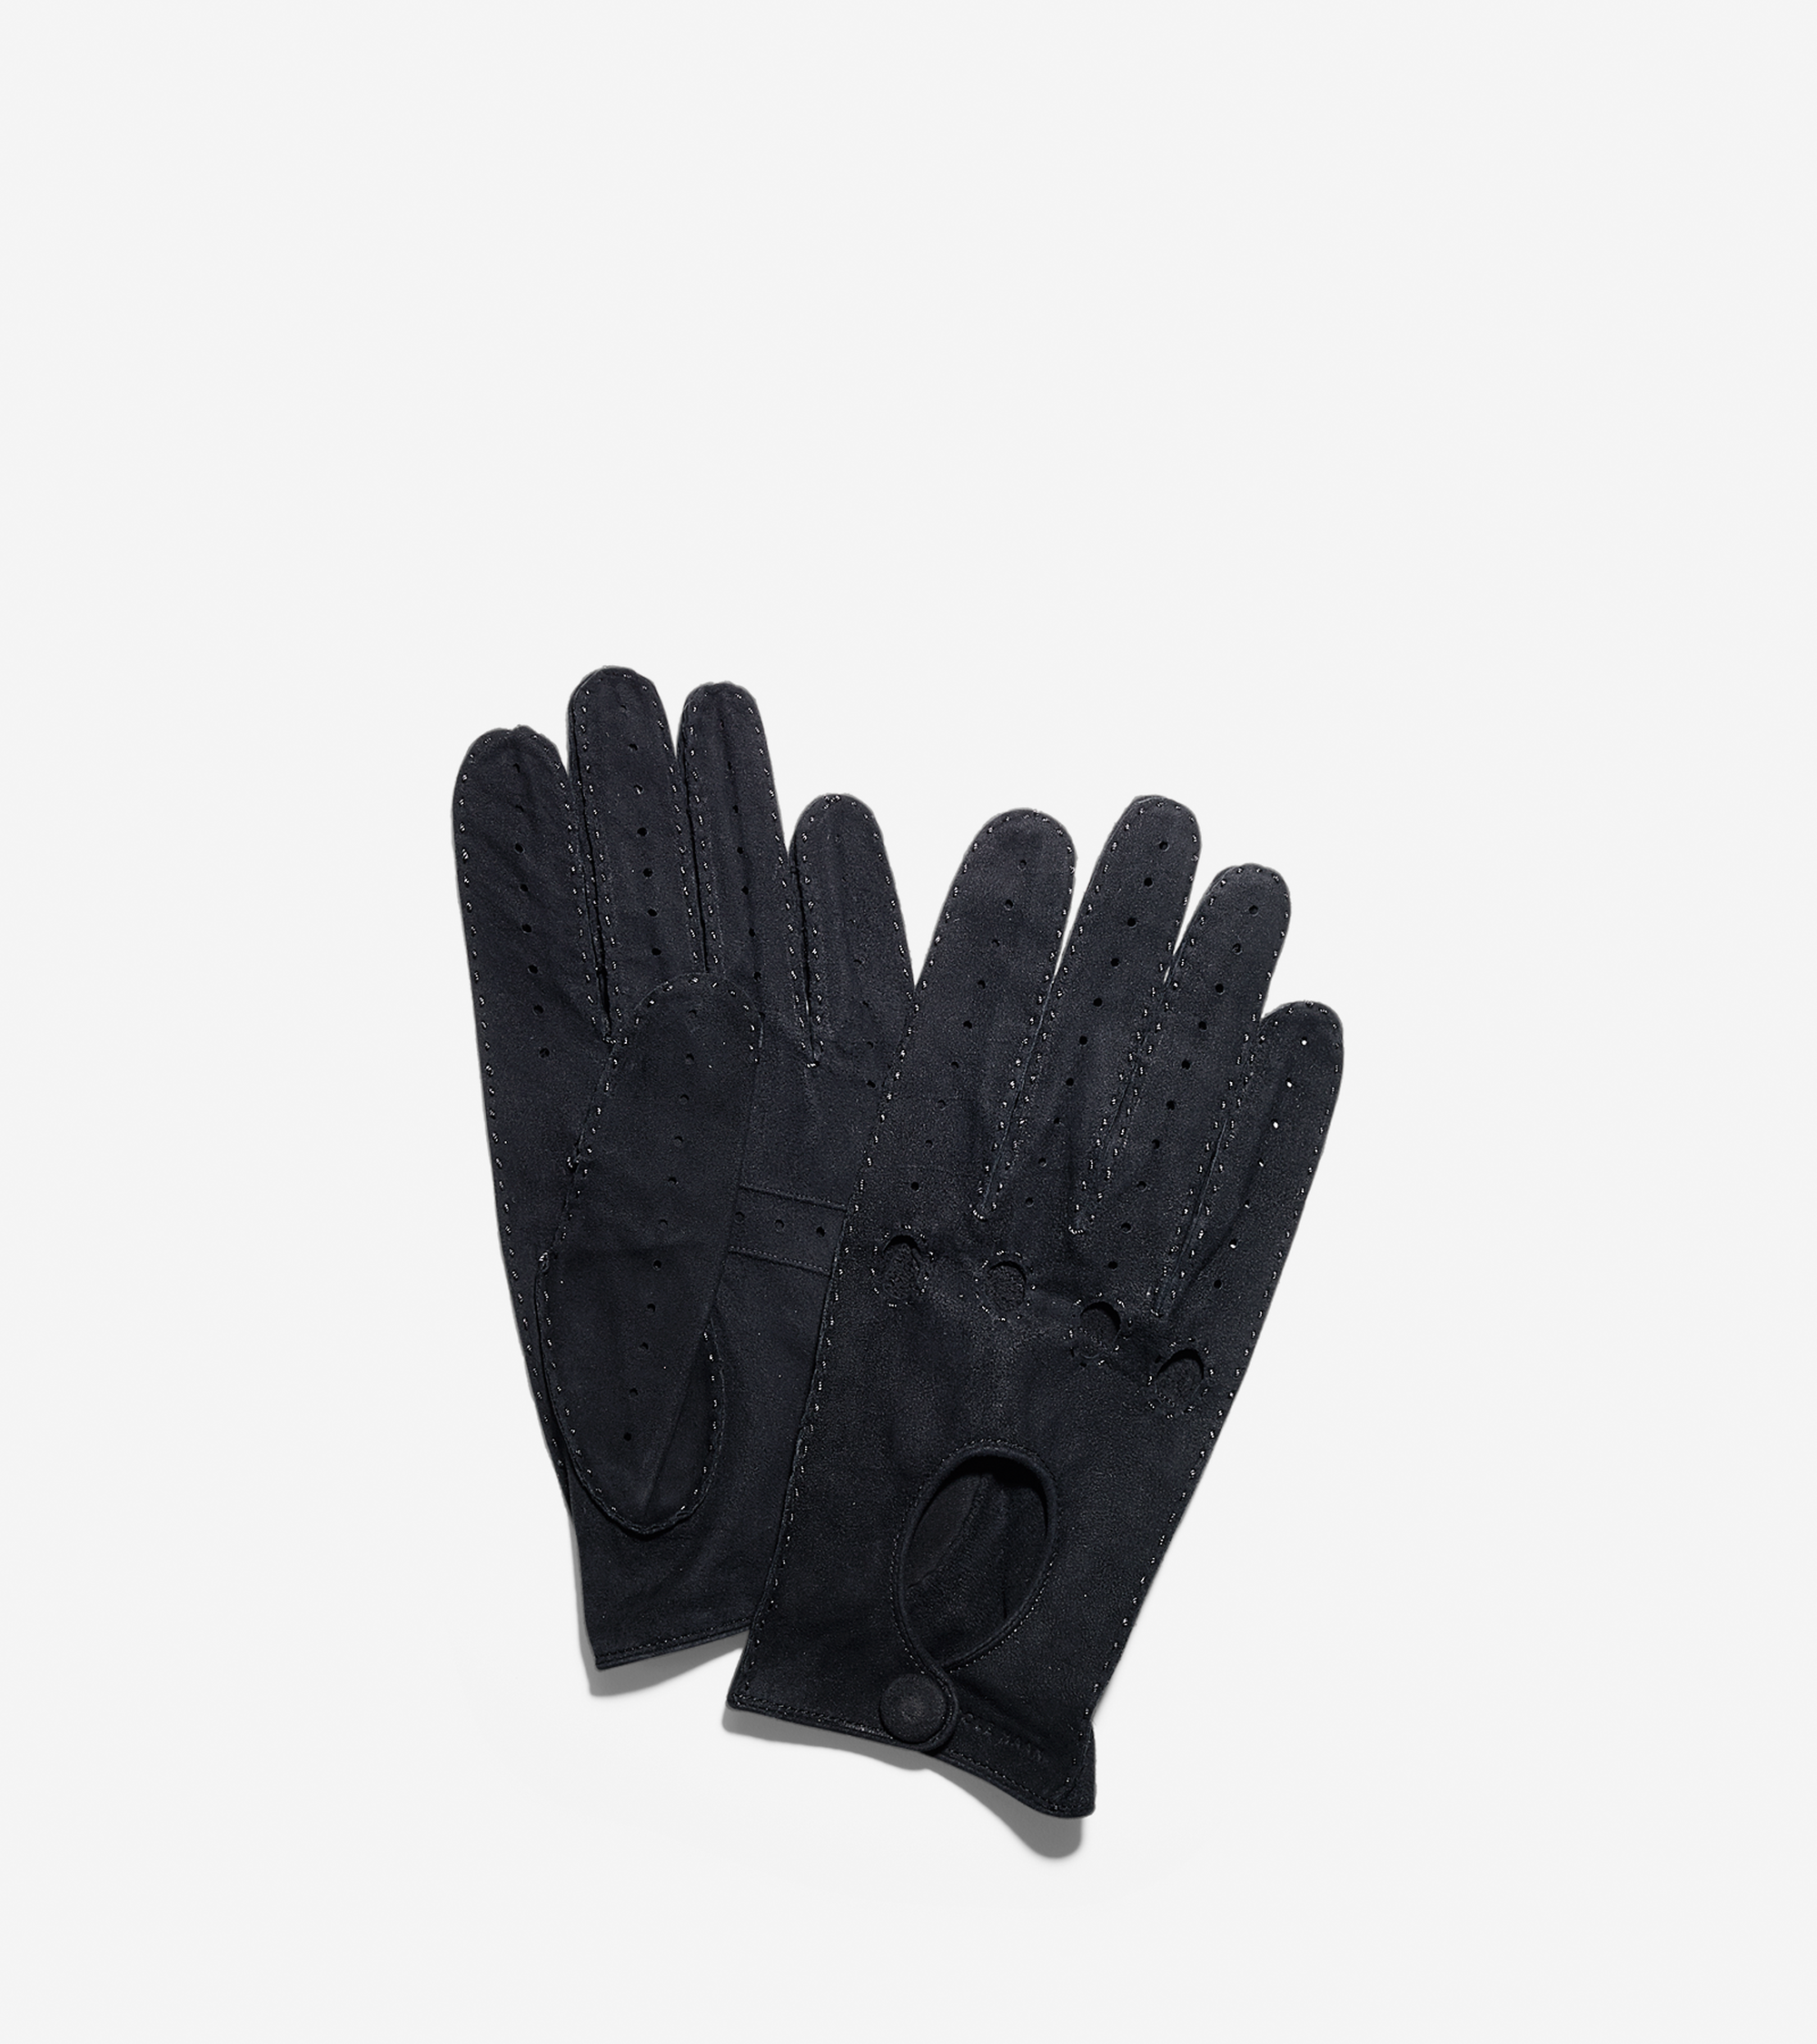 Patent leather driving gloves - Leather Driving Gloves